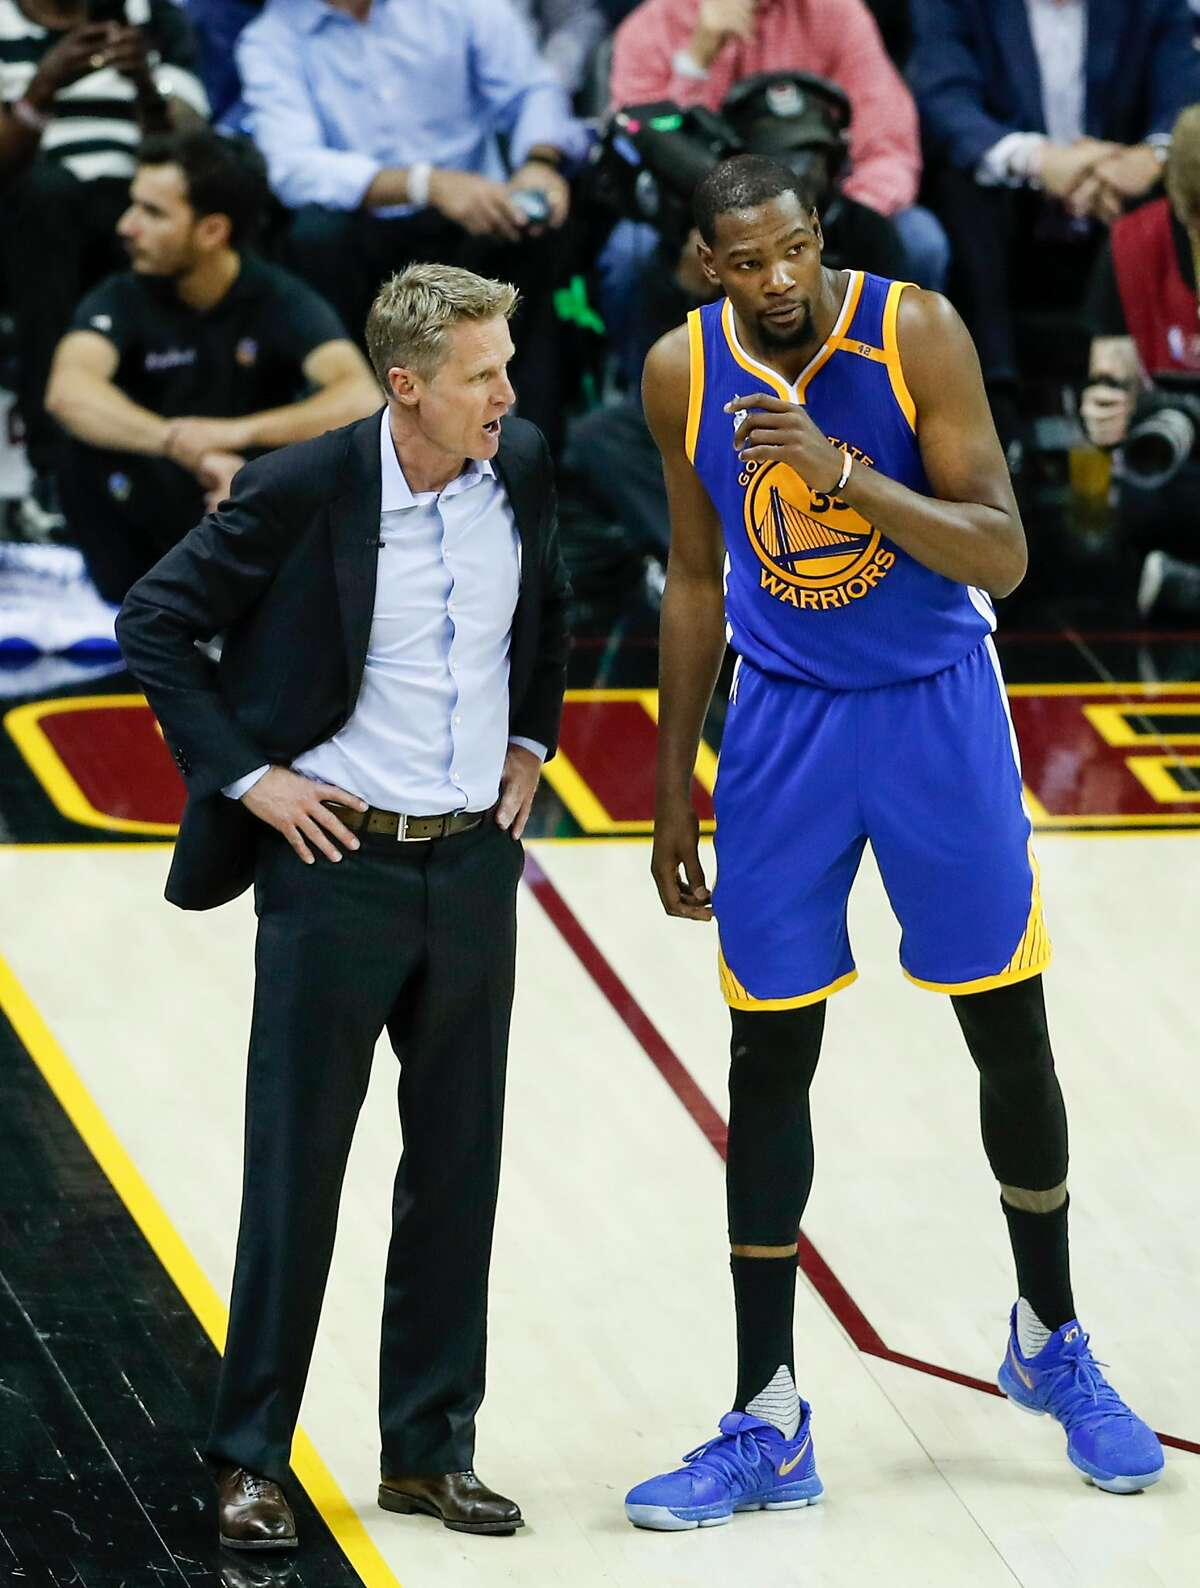 Golden State Warriors' Head Coach Steve Kerr and Kevin Durant talk in the third quarter during Game 3 of the 2017 NBA Finals at Quicken Loans Arena on Wednesday, June 7, 2017 in Cleveland, Ohio